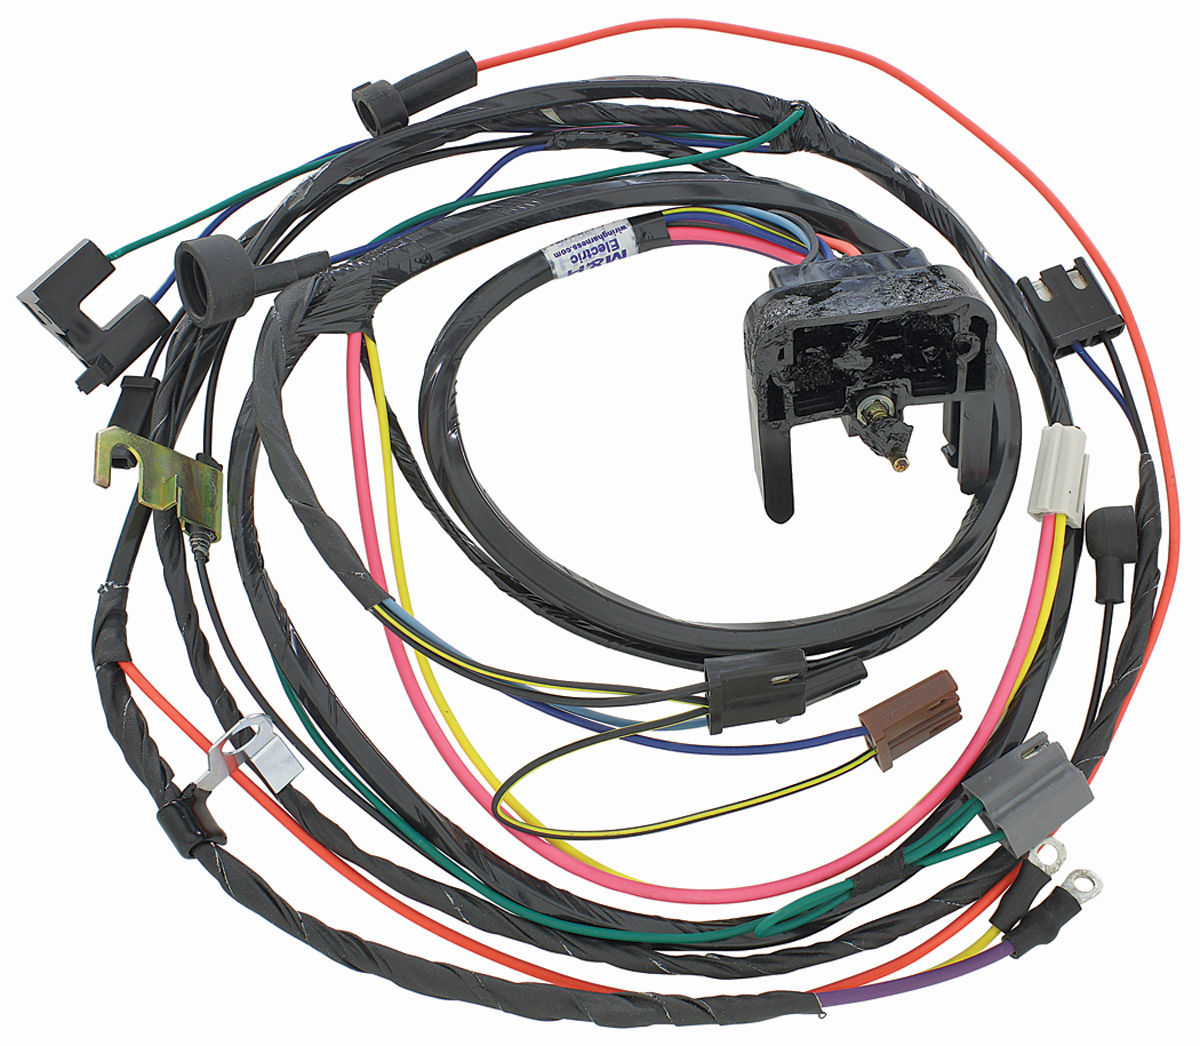 m amp h engine harness 396 454 hei w manual trans fits 1970 1967 el camino wiring diagram